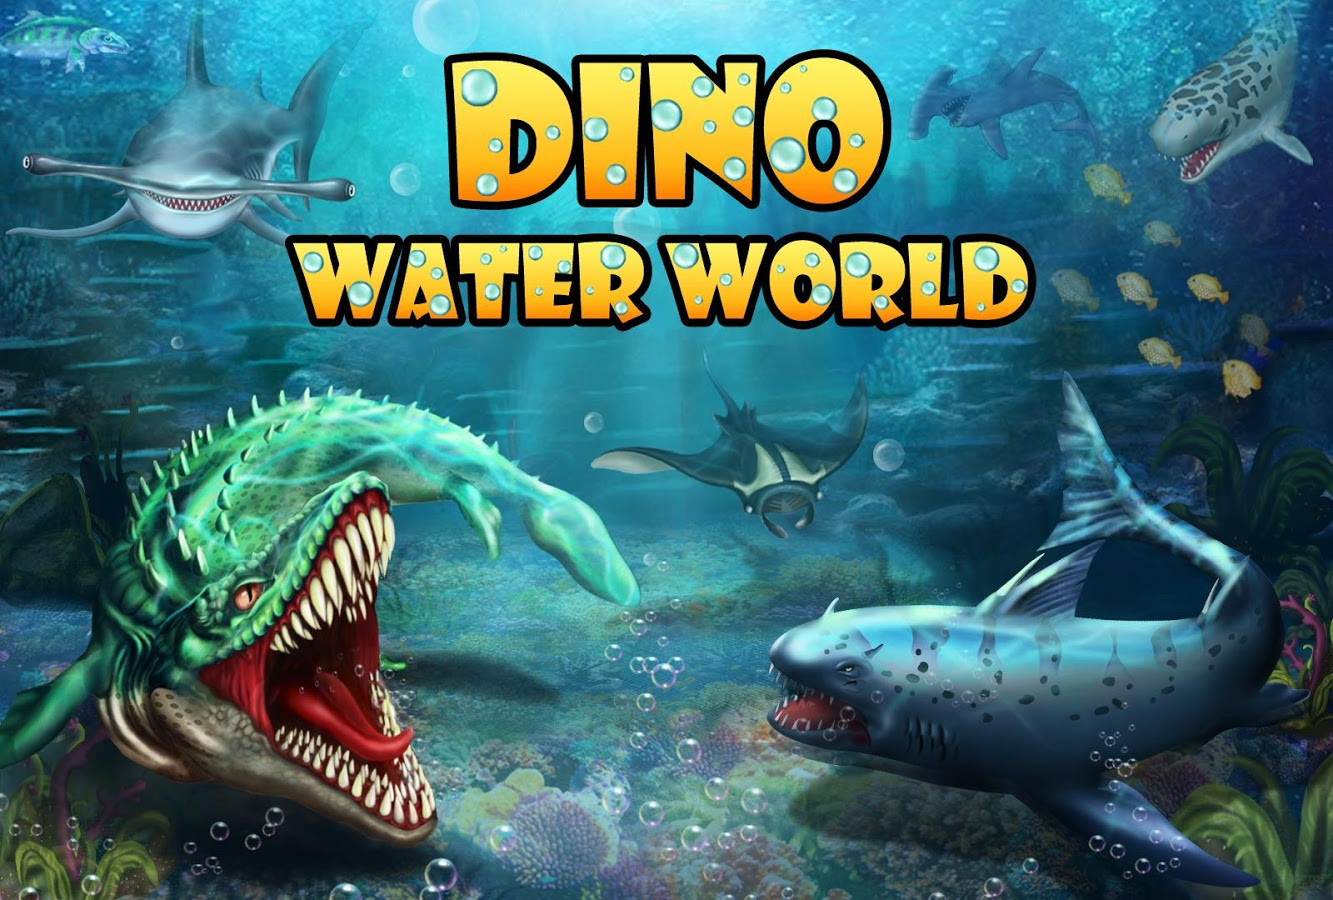 Dinosaurs-games-on-Android-Jurassic-Dino-Water-World.jpg